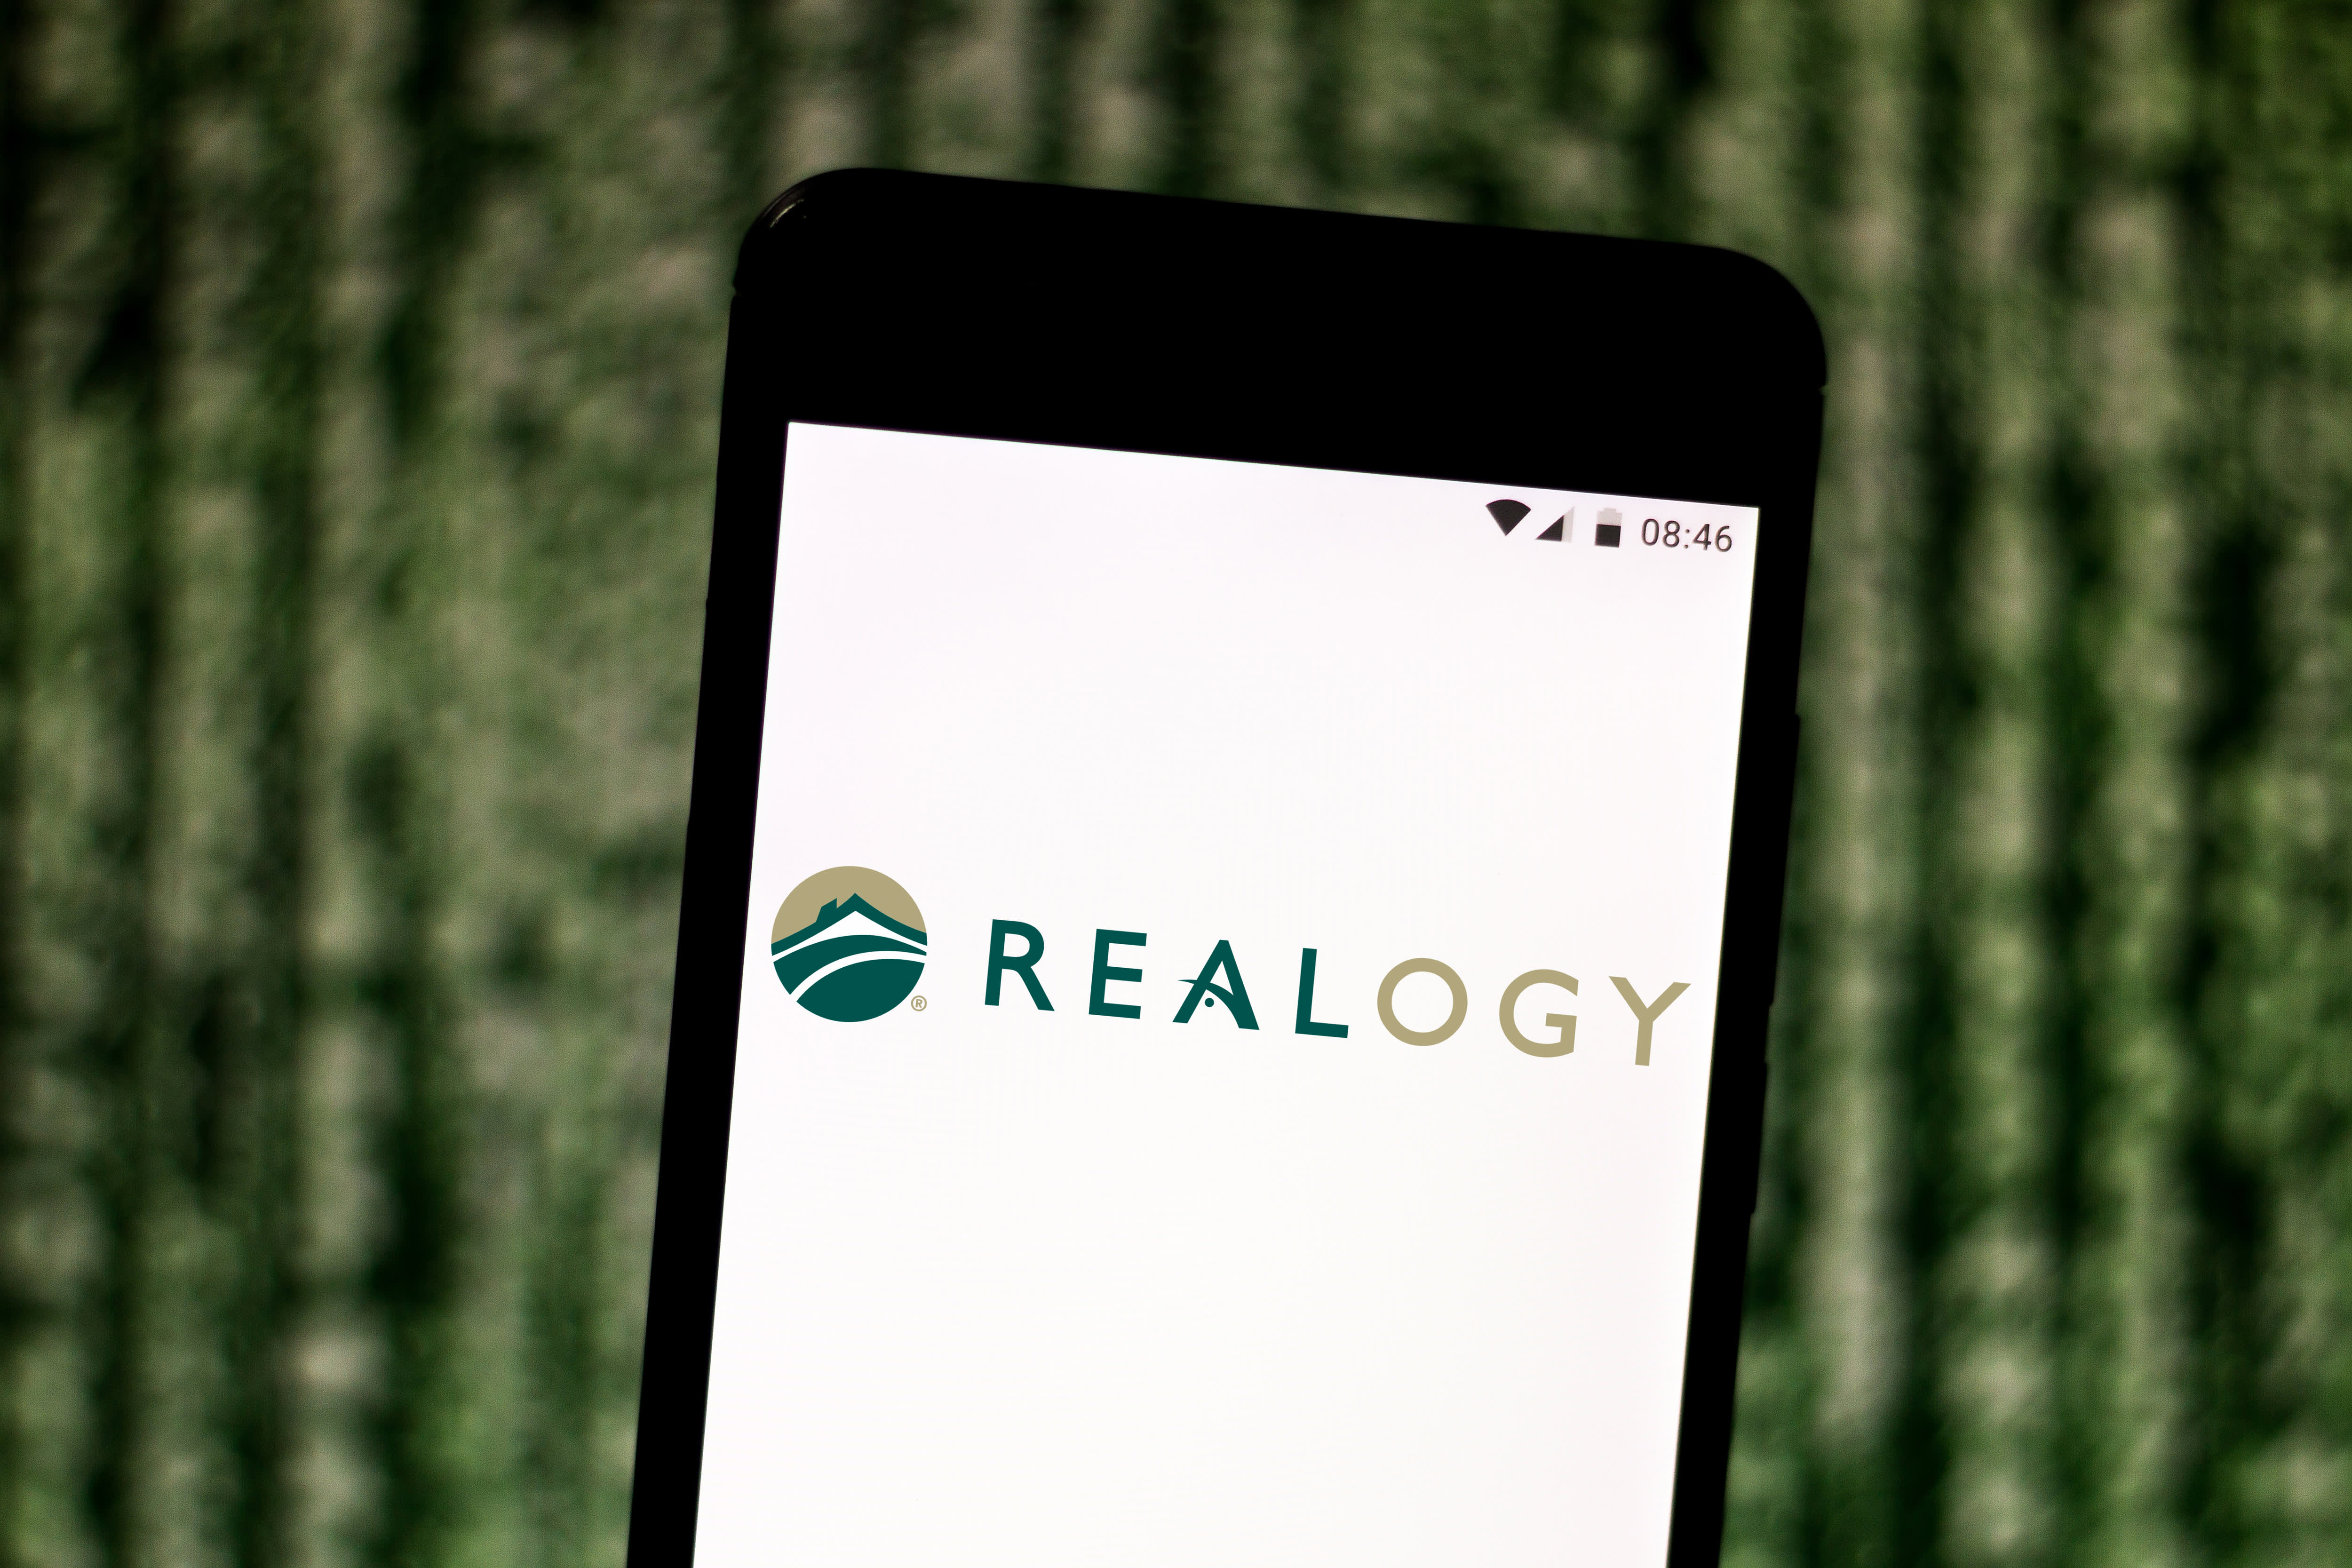 Realogy CEO says remote work is here to stay and the firm is renovating its own HQ to prepare